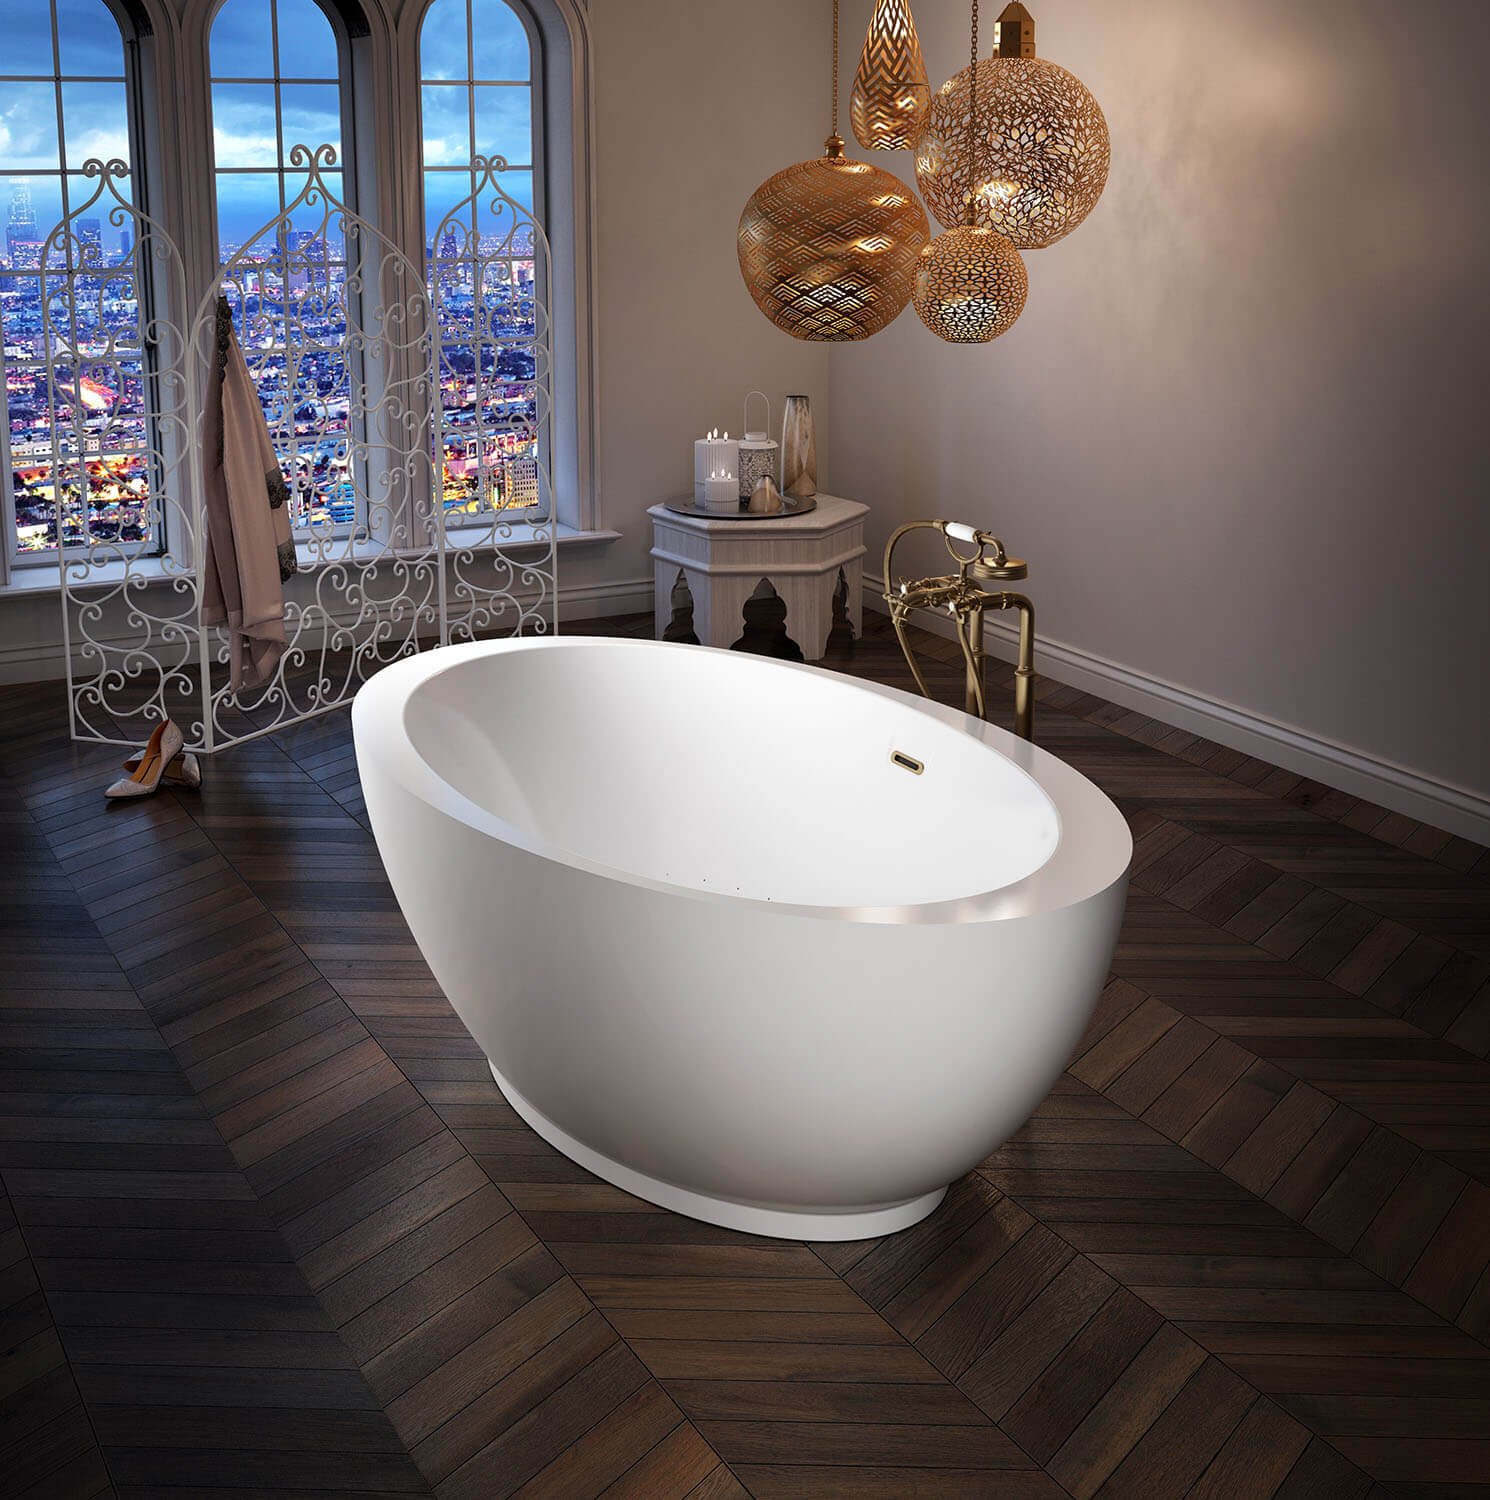 OPALIA 6839 Oblique Ellipse Right air jet bathtub for your modern bathroom